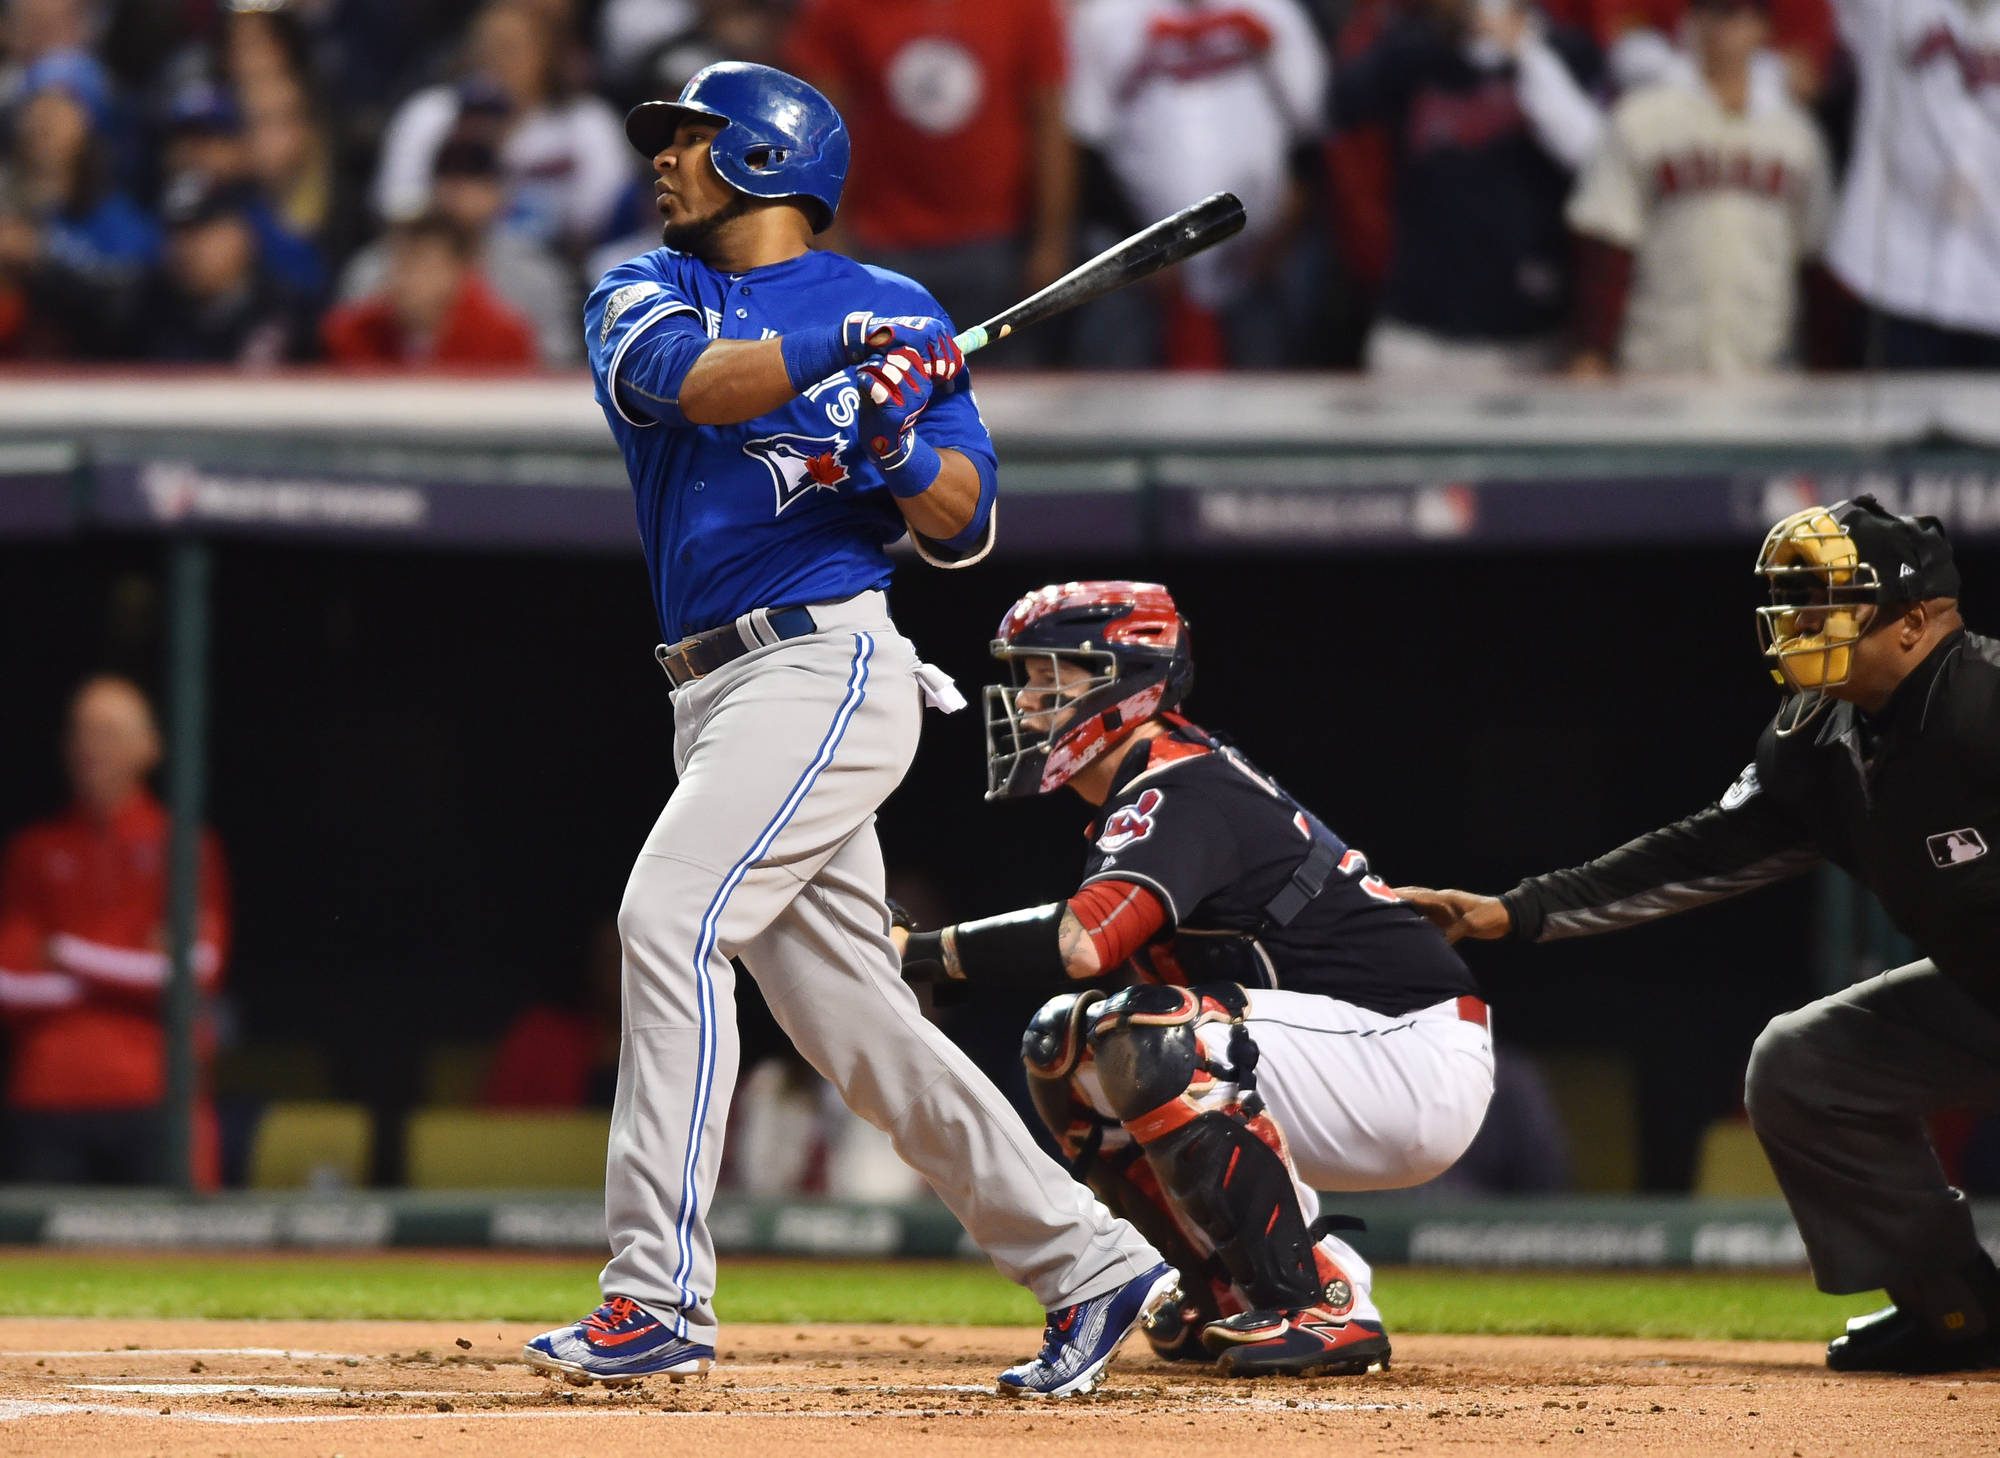 With Encarnacion signing, Cleveland will contend for AL Pennant